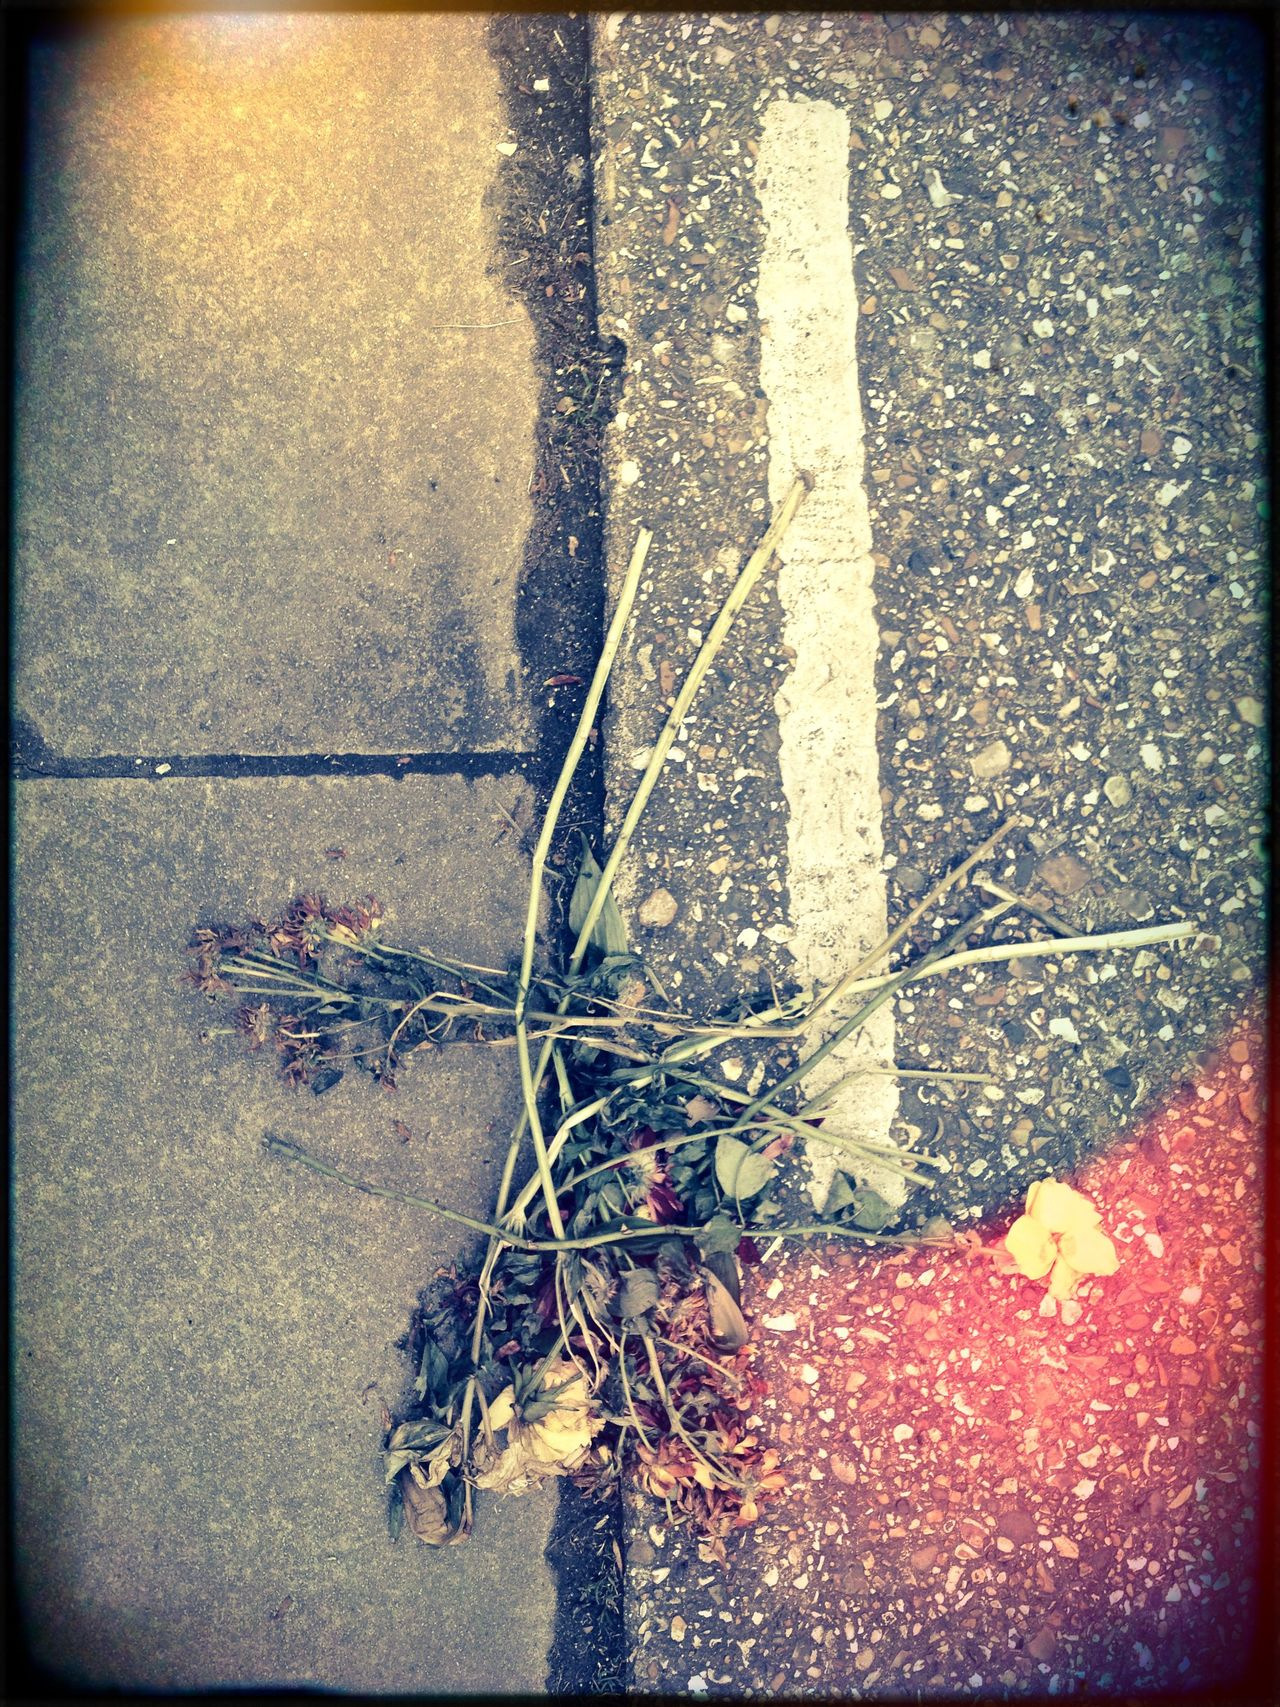 discarded flowers on the road Day Discarded Flowers Elevated View Flowers Ground Kerbside Lifestyles Outdoors Roadside